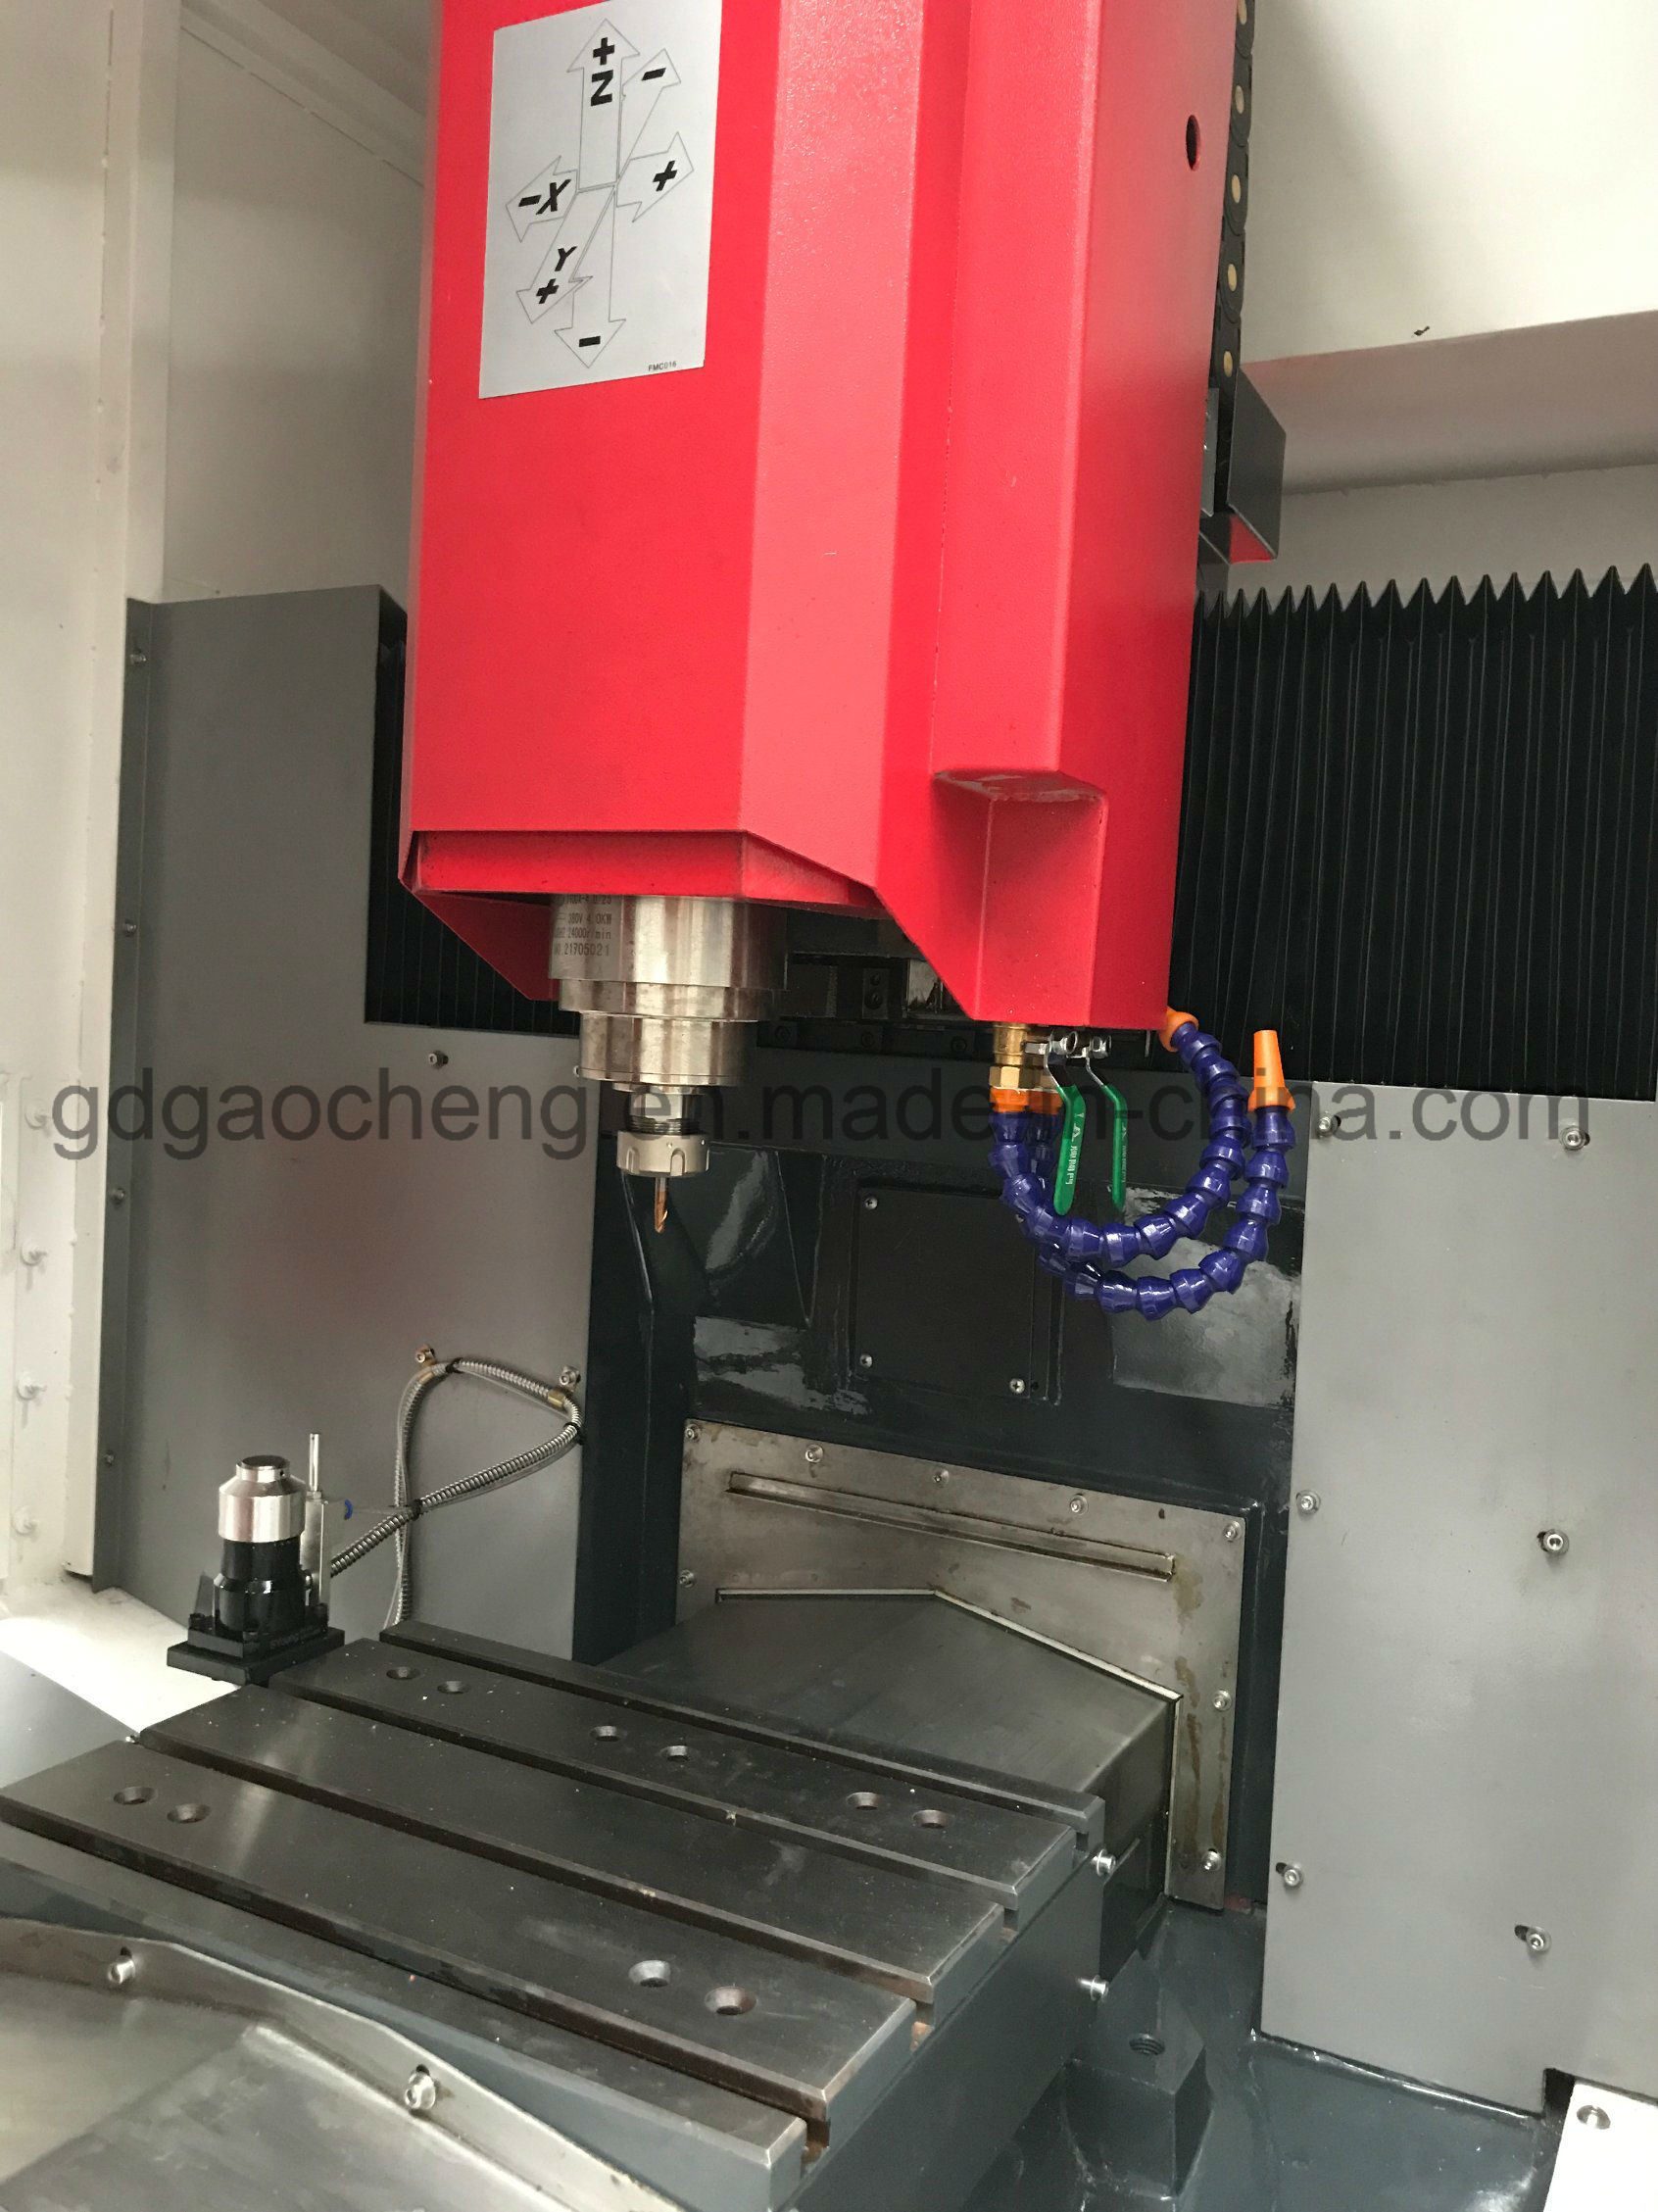 400X300mm Compact Design CNC Milling and Engraving Machine GS-E430